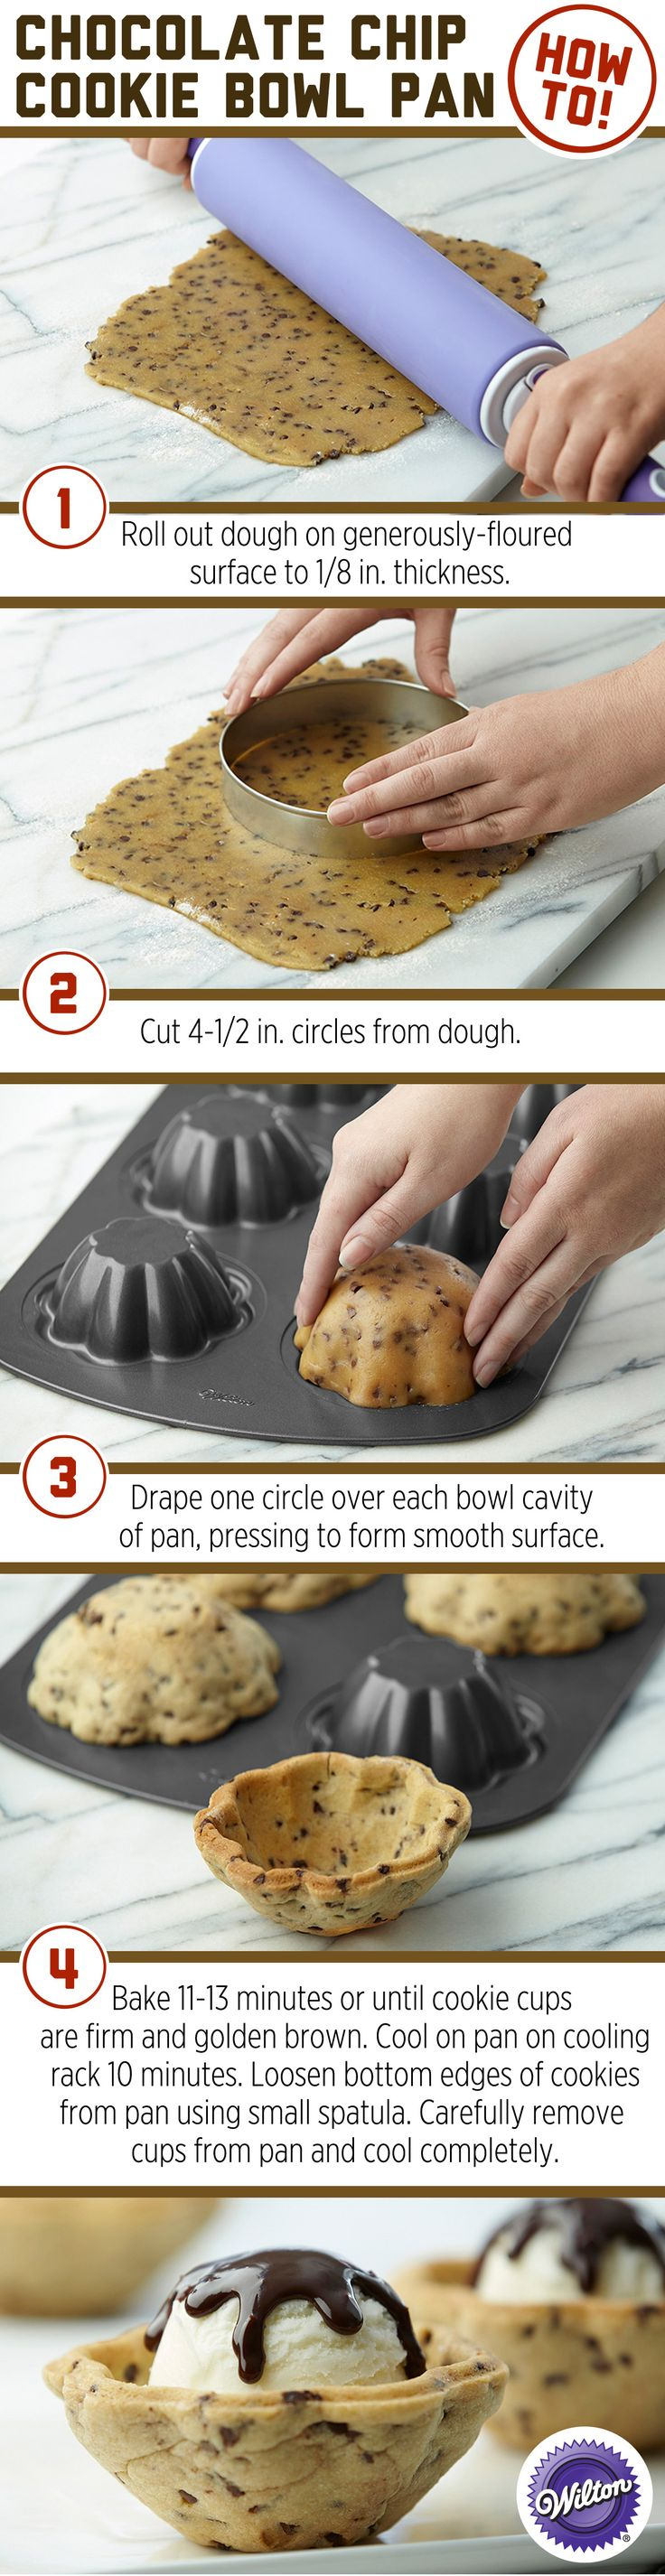 Wilton ice cream cookie bowl pan - fun way to serve ice cream sundaes; ideal for baking cookies in the shape of cups. They make great containers for a DIY ice cream bar and work perfectly for mini cakes, too!